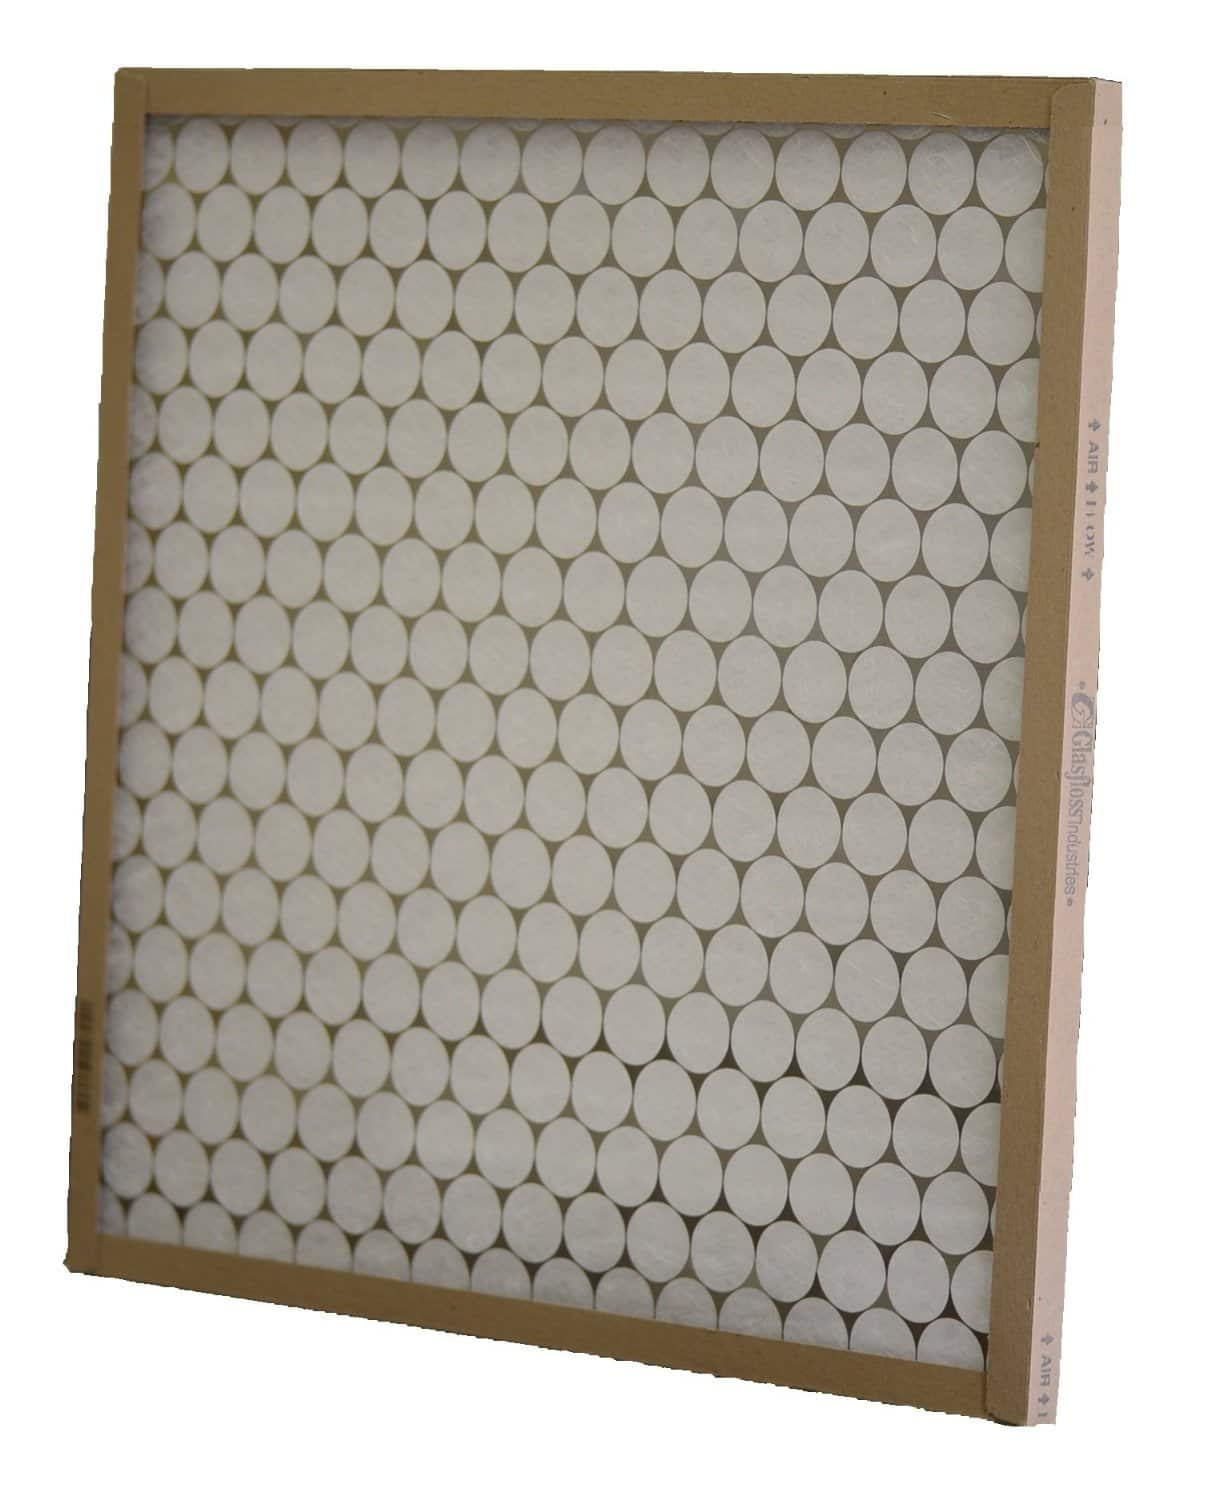 Glasfloss Industries PTA16251 PTA Series Heavy Duty Disposable Panel Air Filter in white background